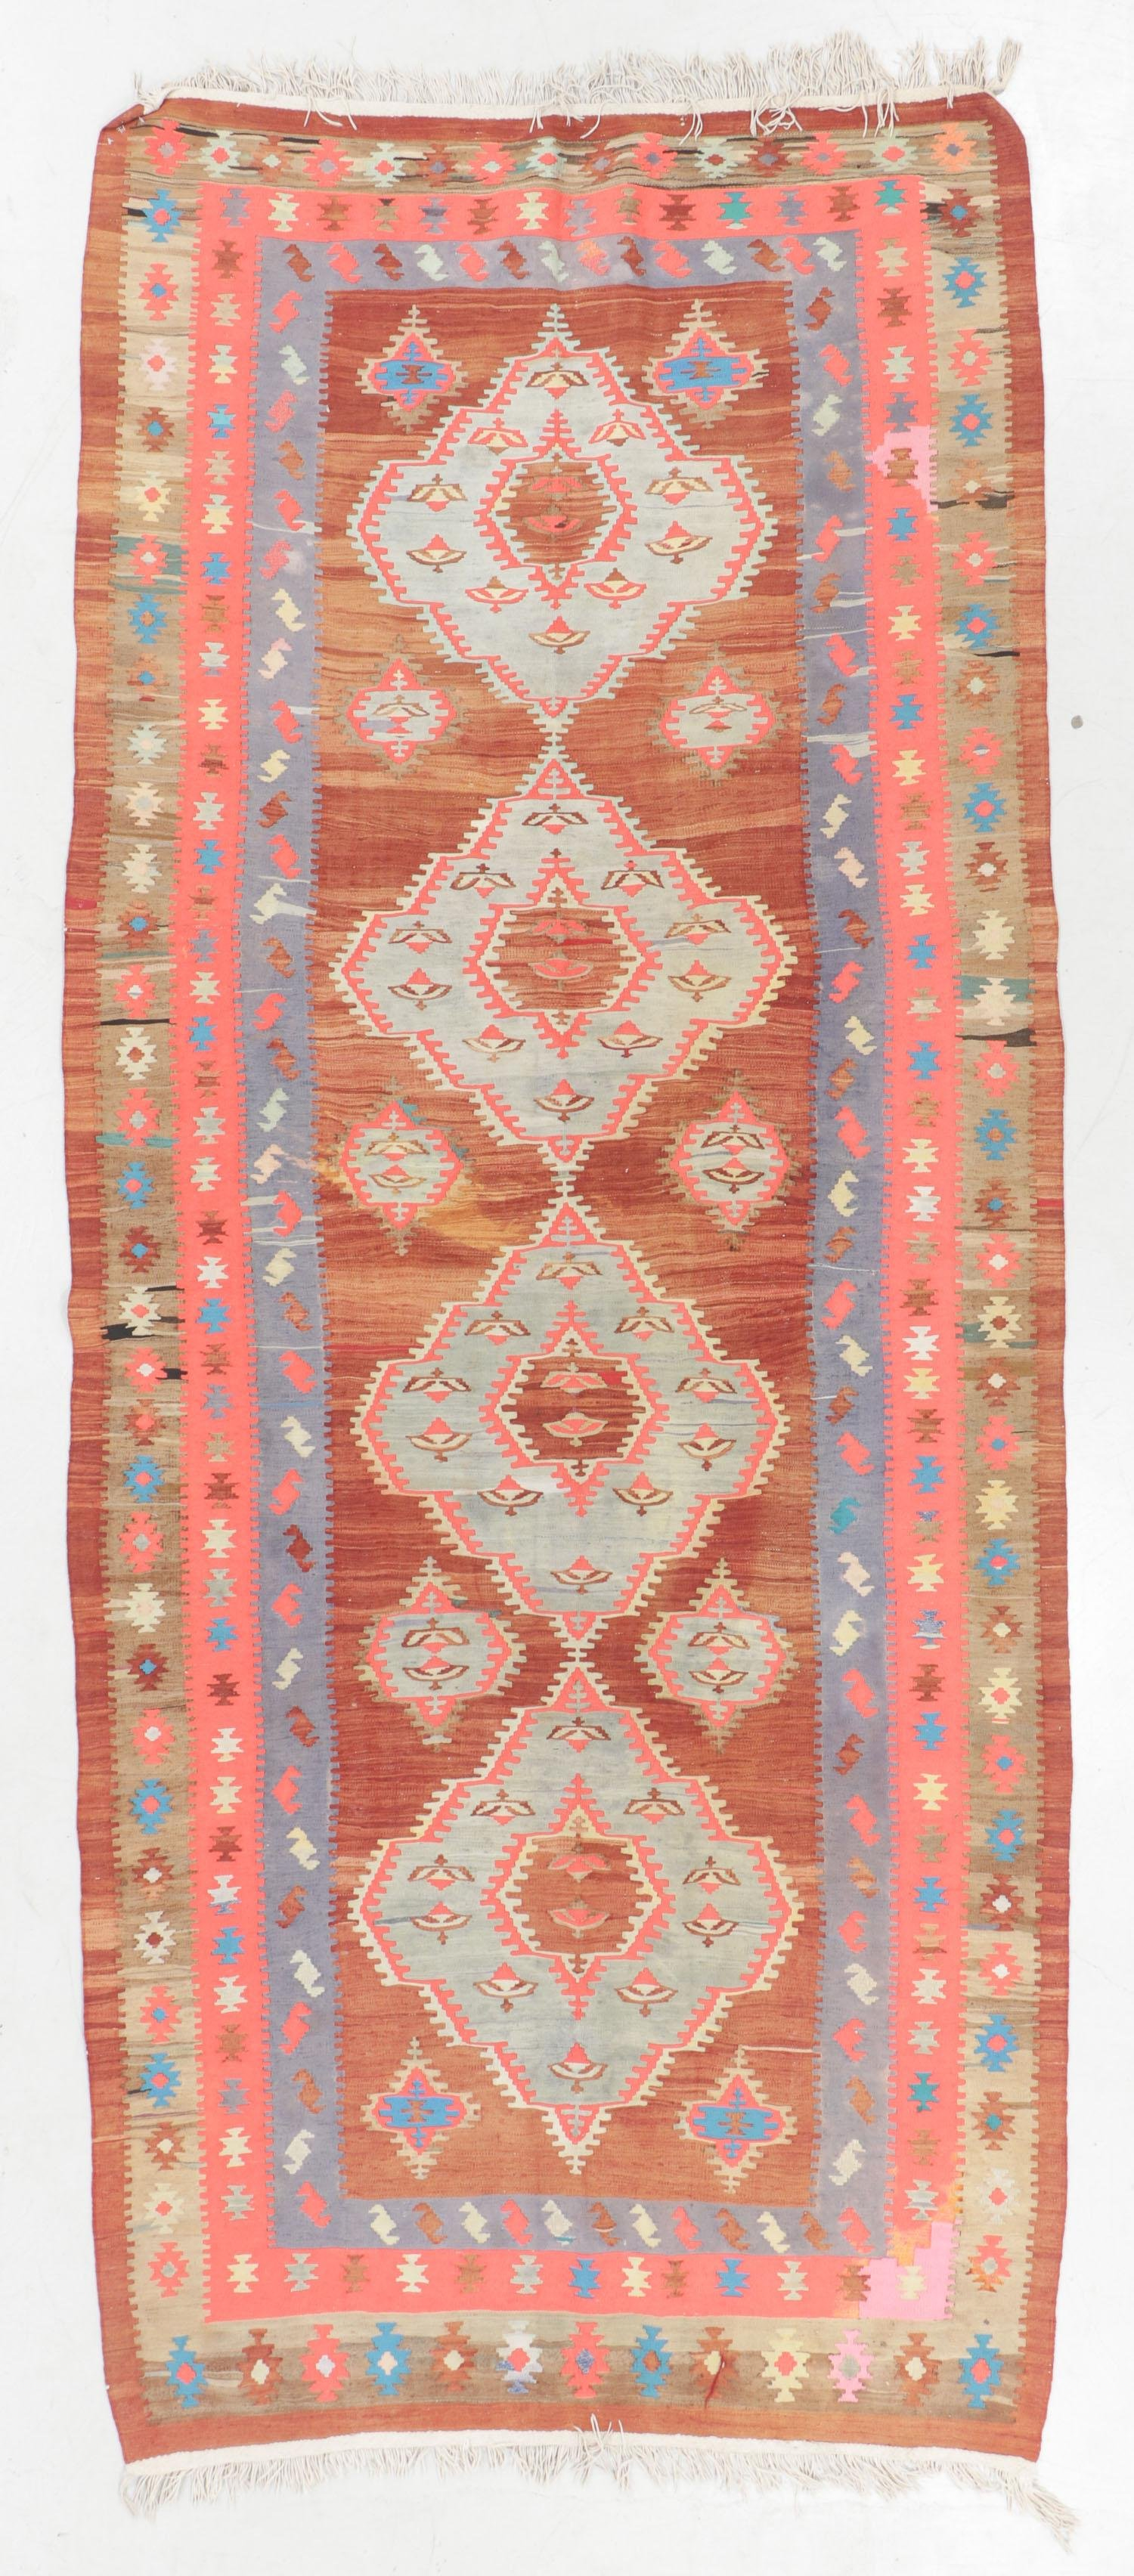 West Persian Kilim, Persia, Early/Mid 20th C., 4'9'' x